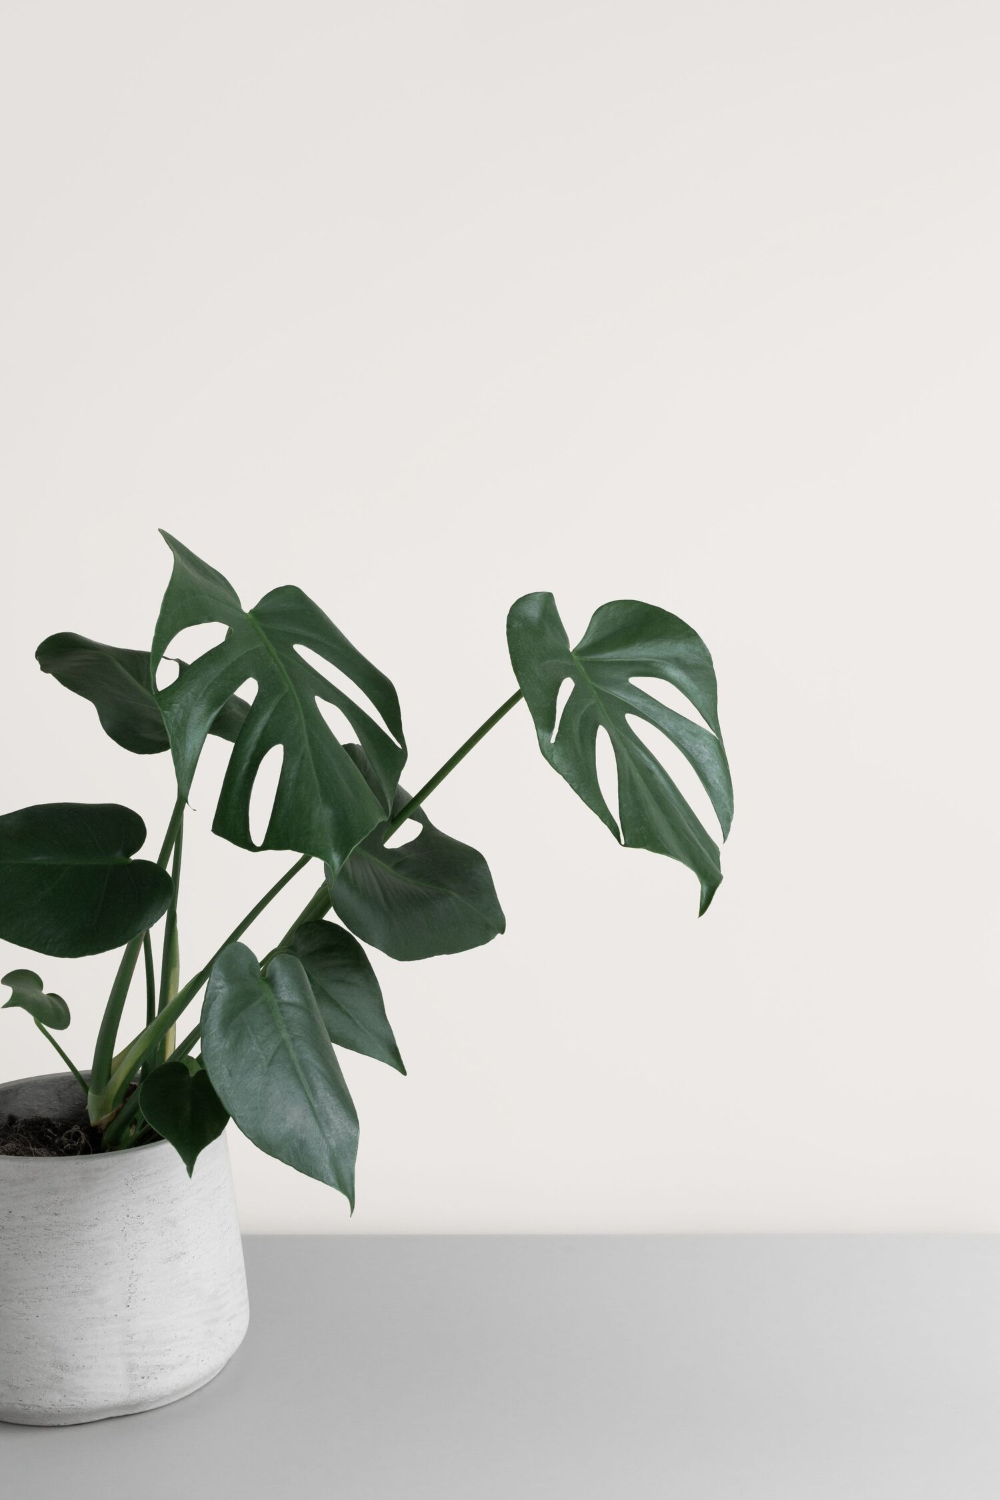 Aesthetic Minimalist Plant Wallpaper